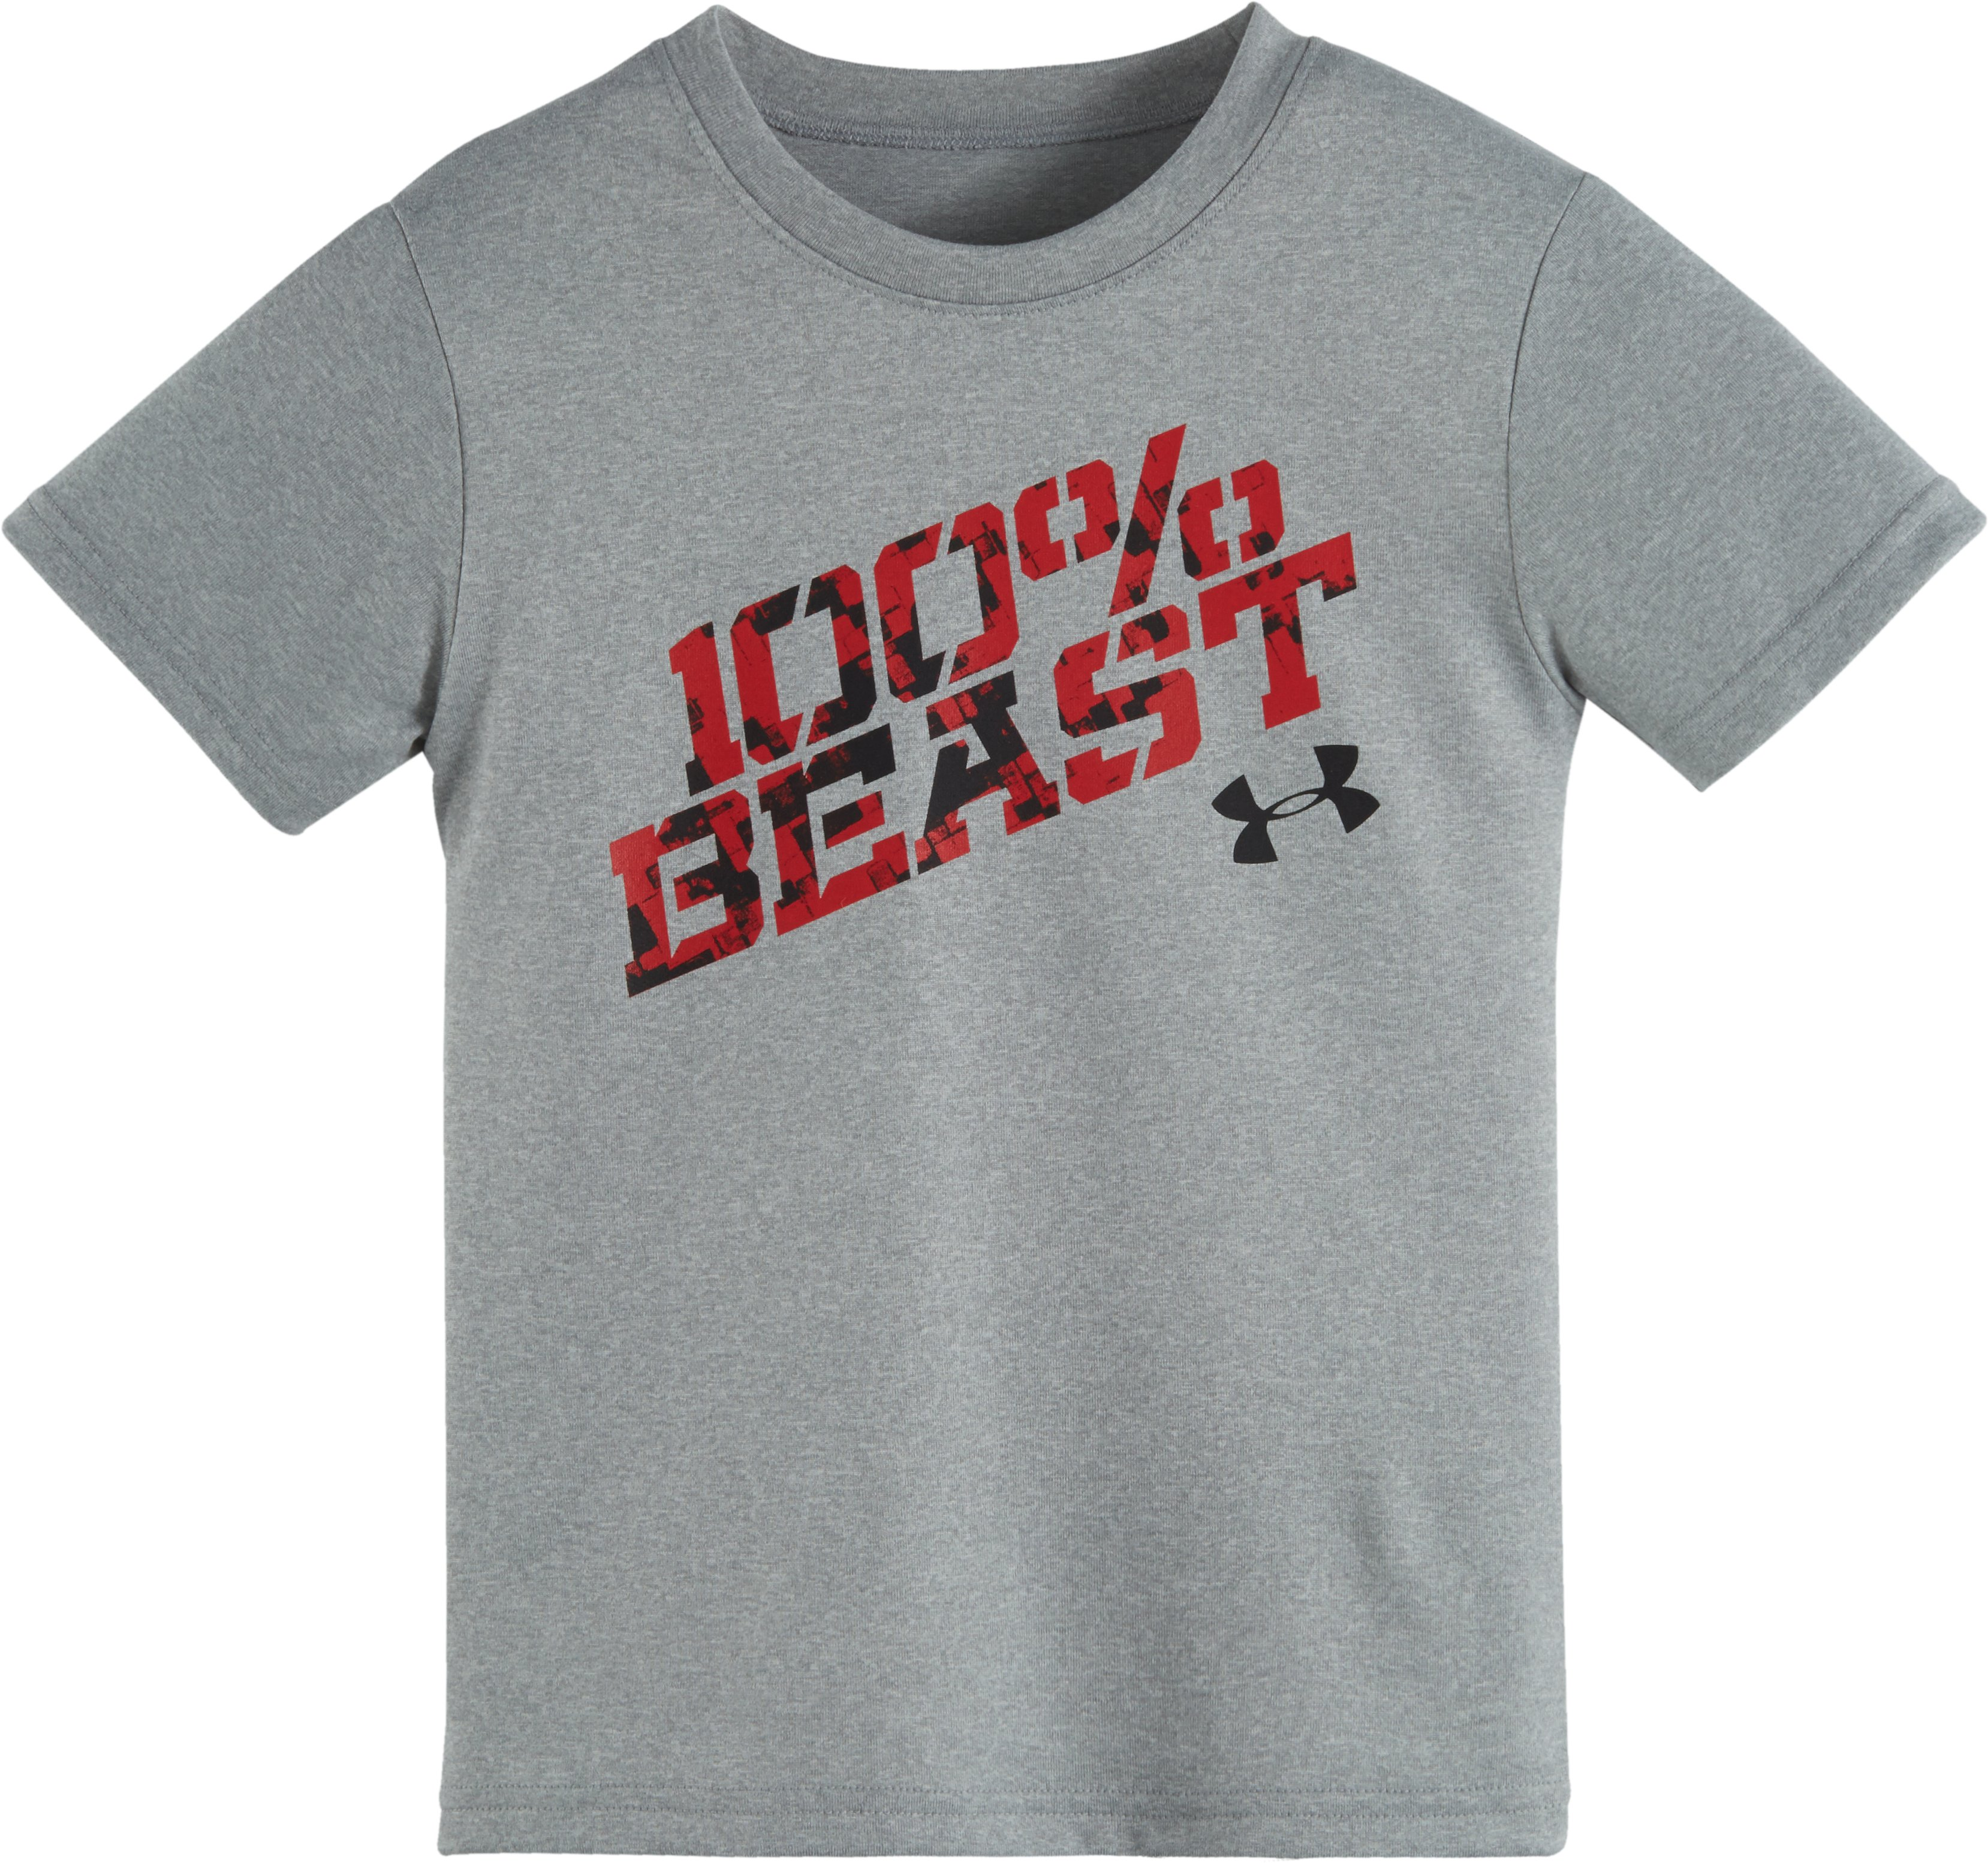 Boys' Toddler UA 100% Beast Short Sleeve T-Shirt, True Gray Heather